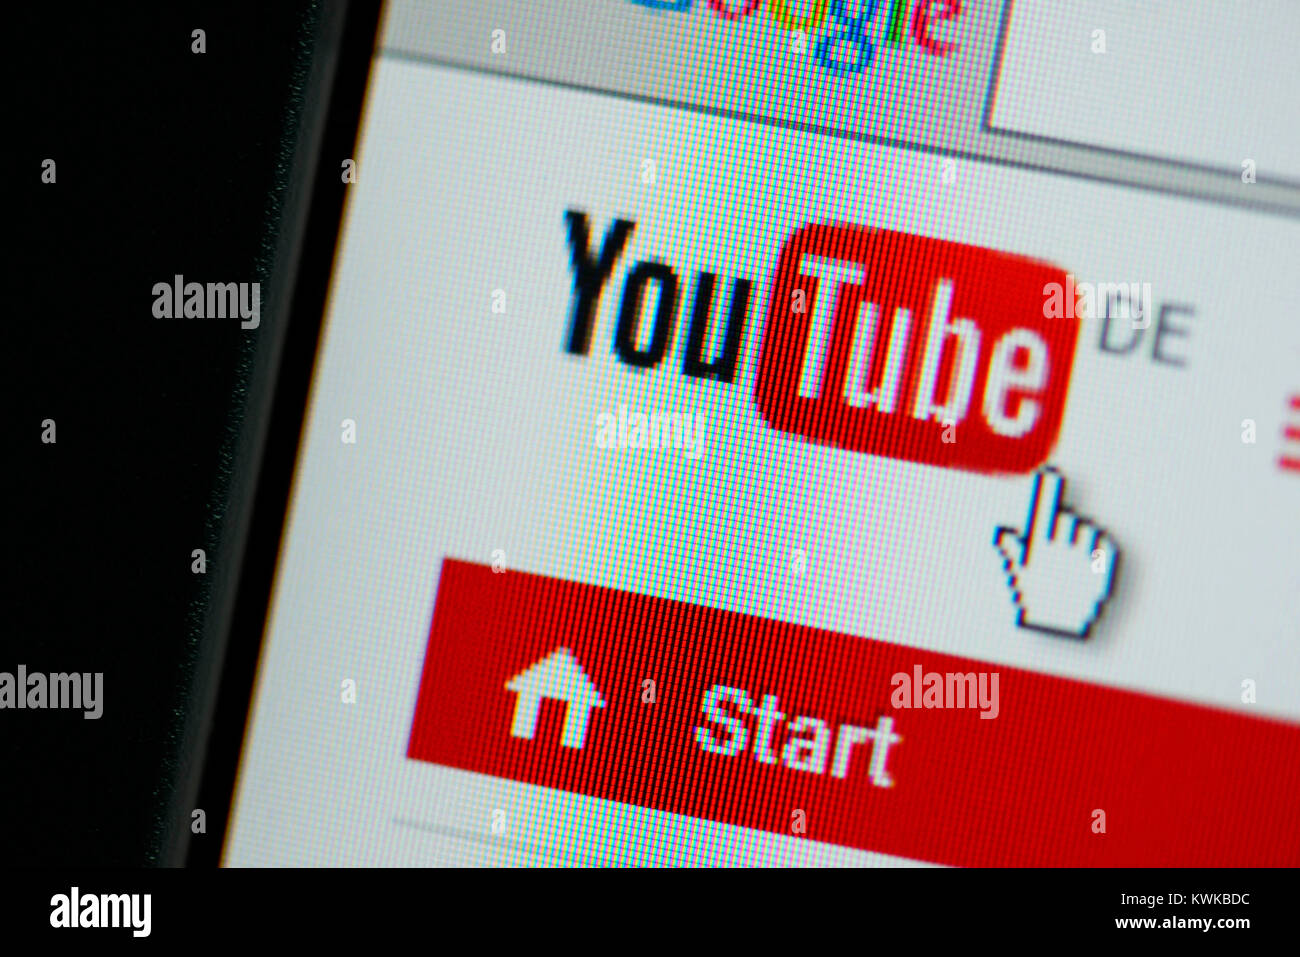 You tube logo on a screen, You tube wants to offer contents liable for costs, You Tube-Logo auf einem Bildschirm, - Stock Image